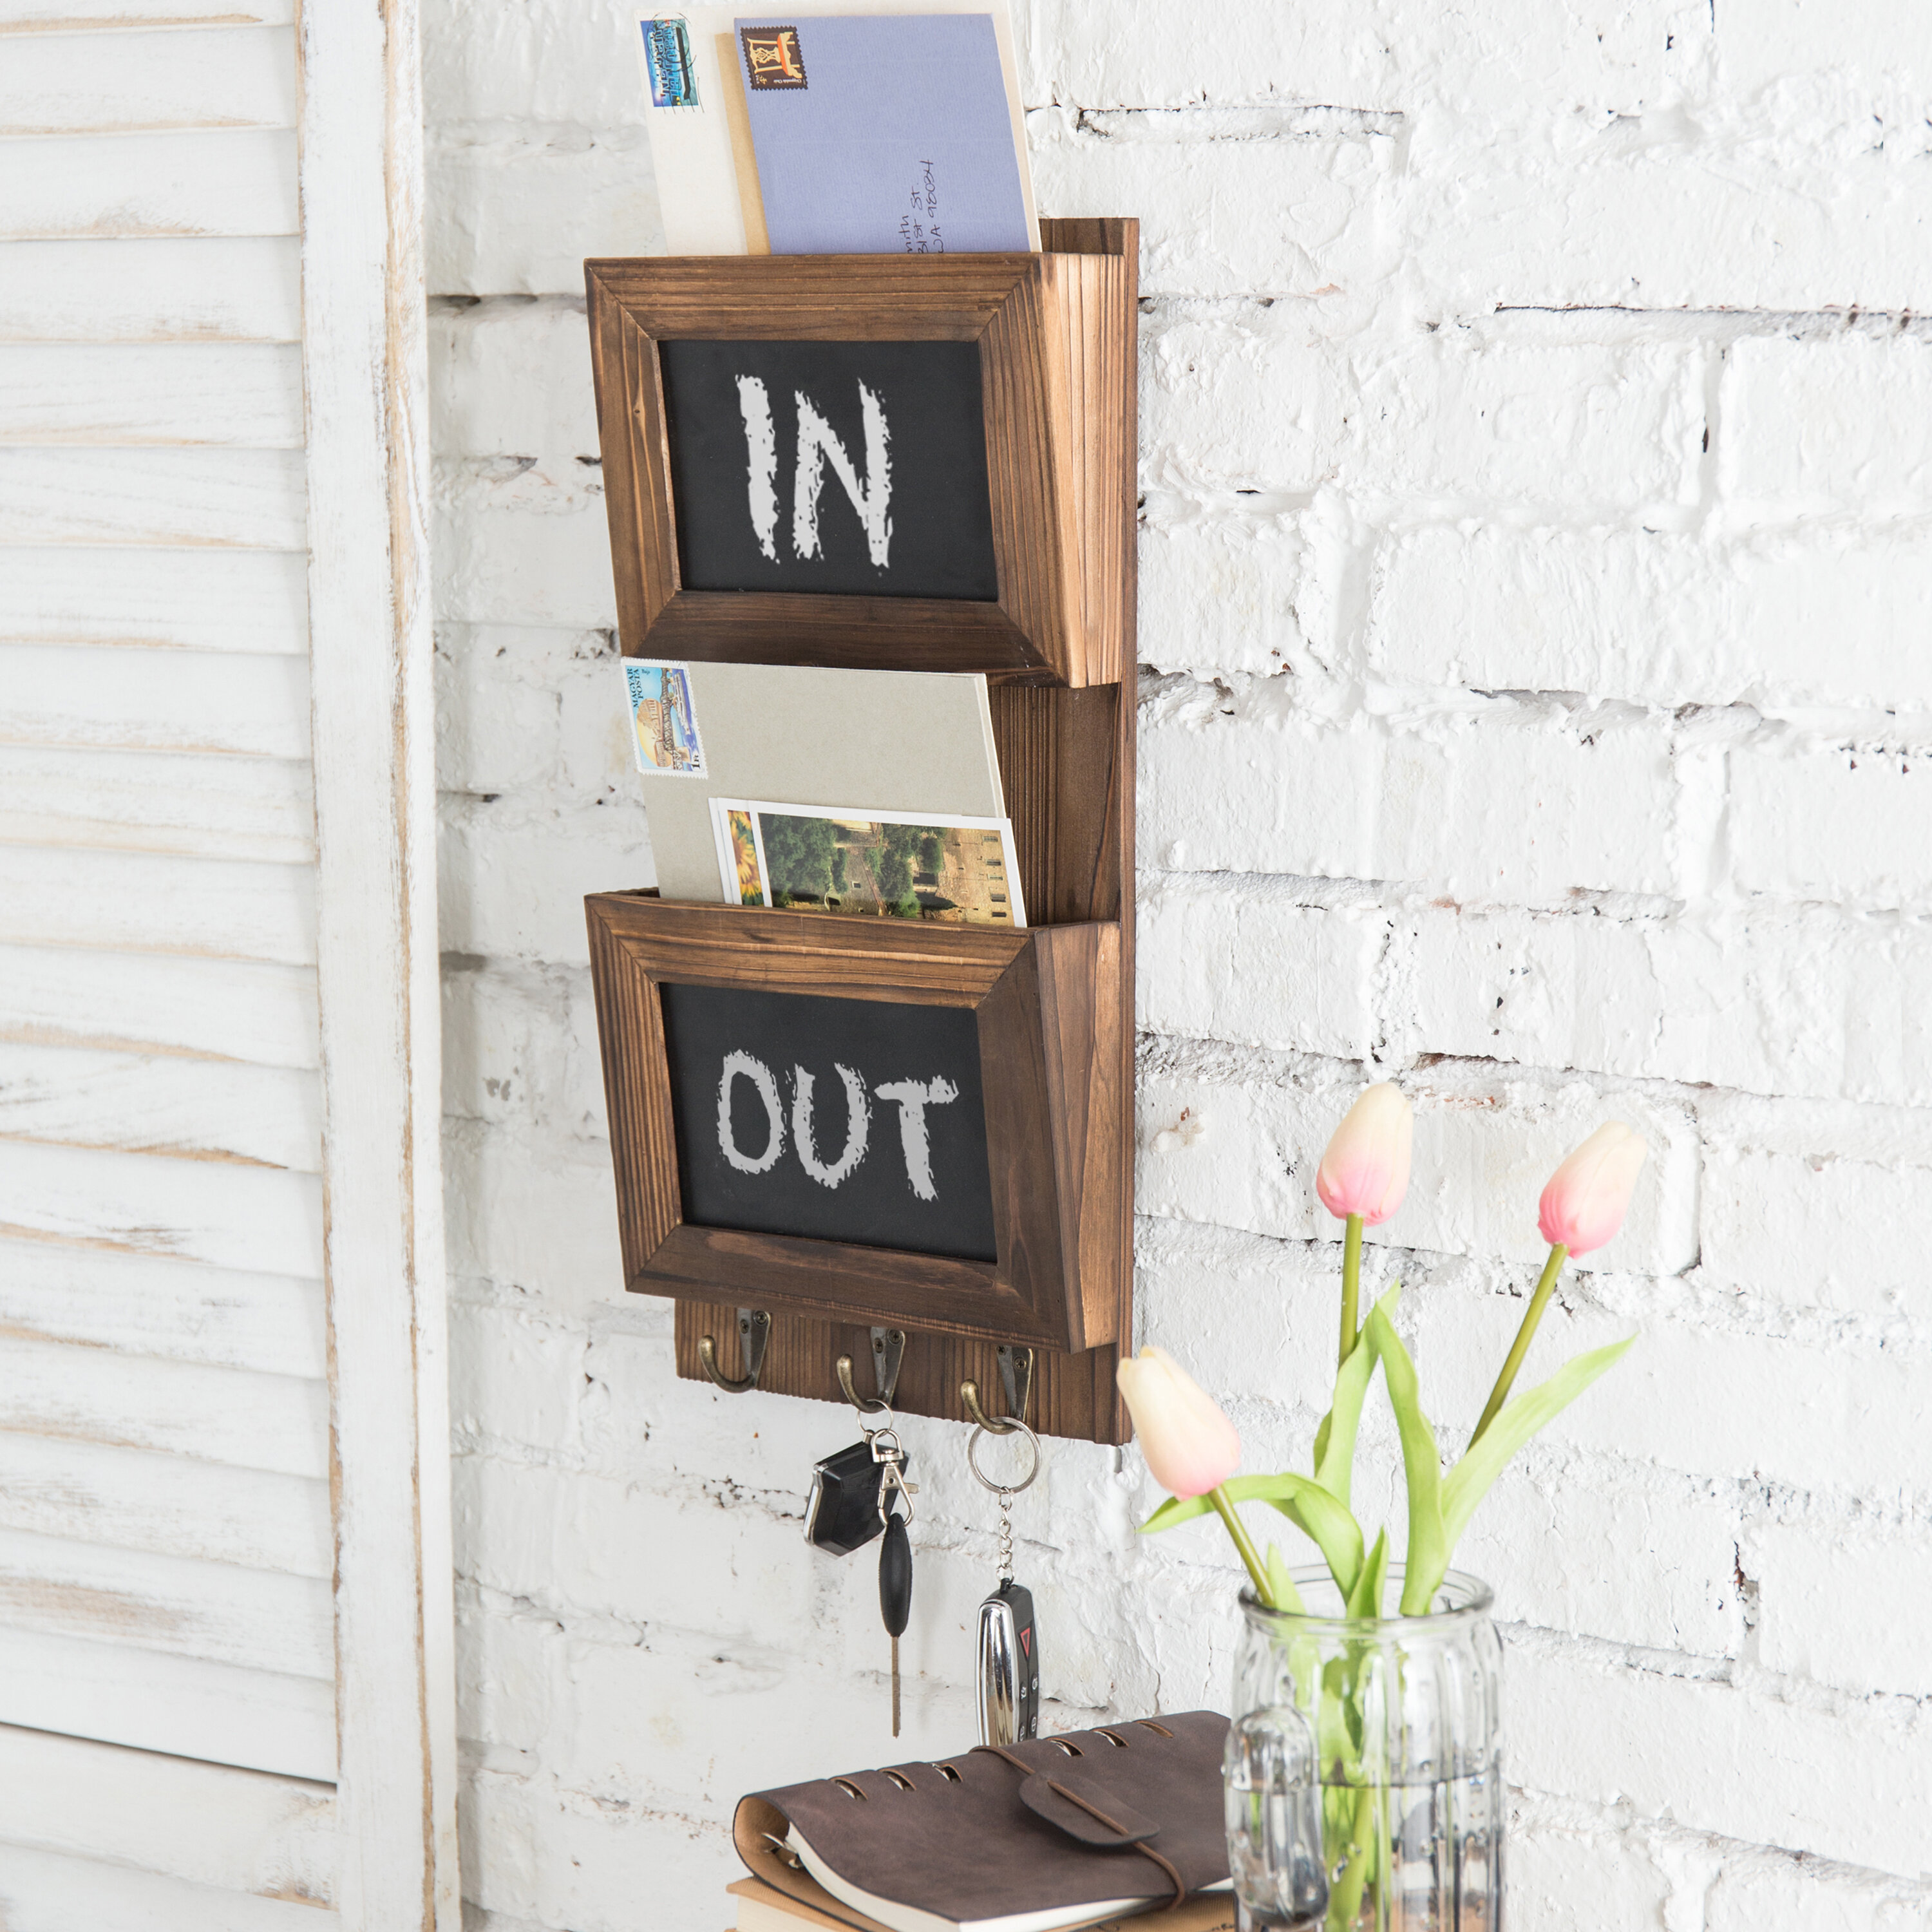 Wood Entryway Wall Organizer with 3 Double Key Hooks Key and Mail Holder for Wall with Chalkboard 2-Slot Mail Sorter Wall Mount with Chalkboard for Entryway Natural Wood Office Mudroom